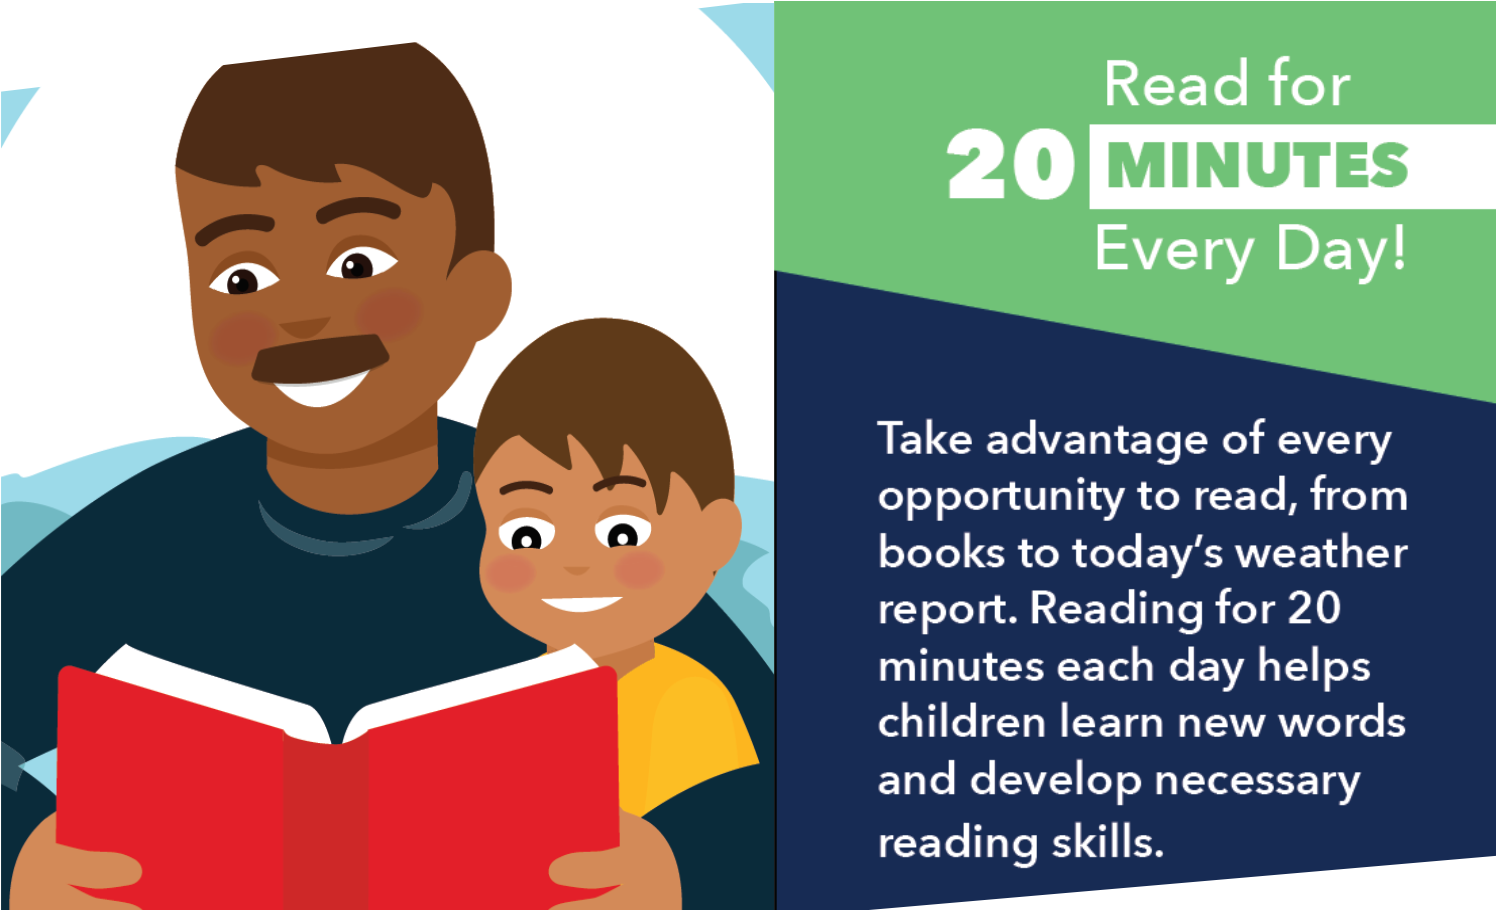 Read for 20 Minutes every day - take advantage of every opportunity  to read, from books to today's weather report. Reading for 20 minutes each day helps children learn new words.and develop necessary reading skills.